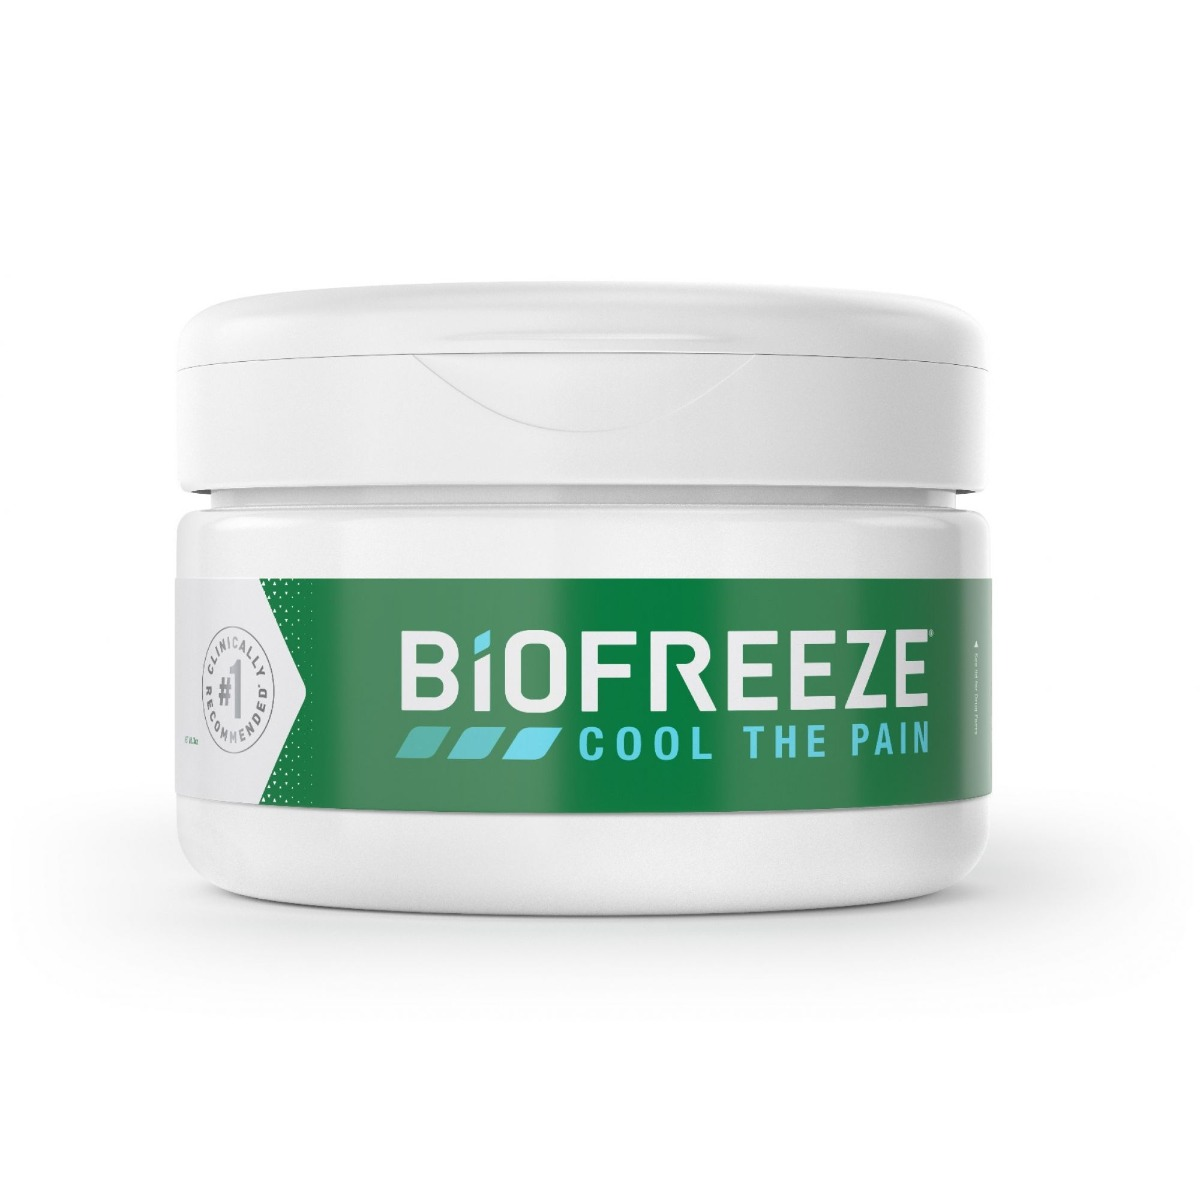 biofreeeze cream in jar